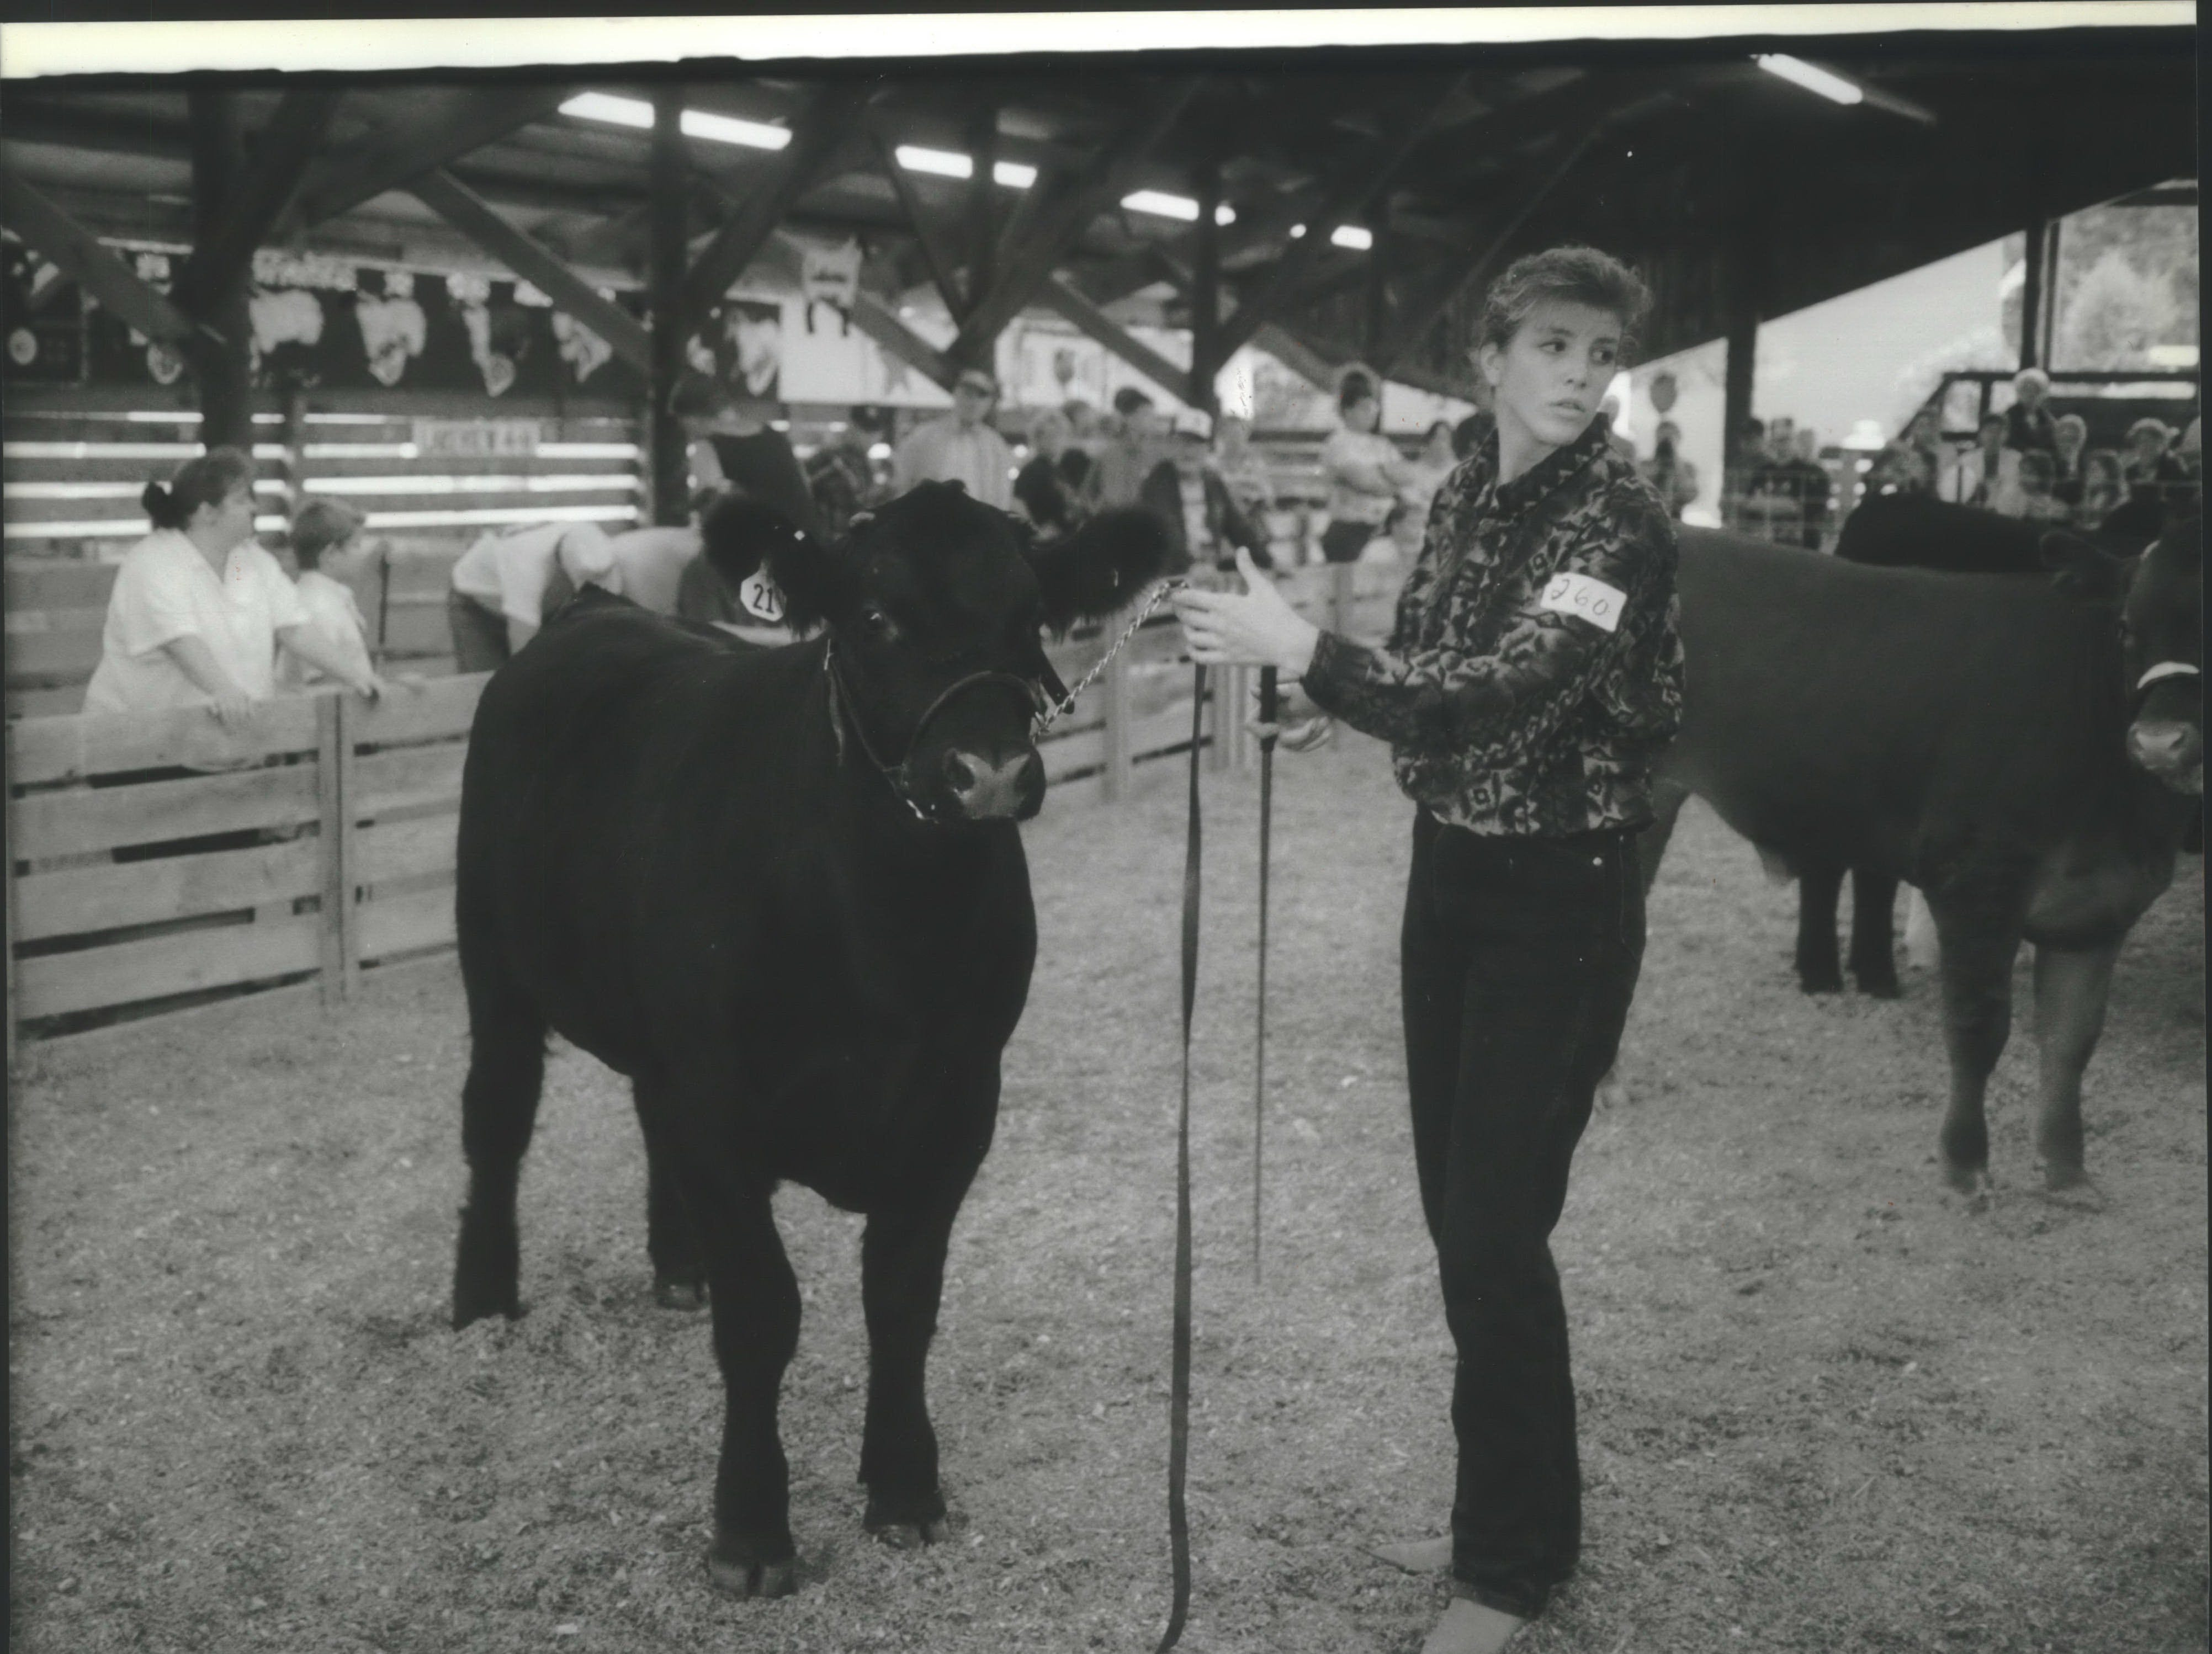 The 135th Ozaukee County Fair is drawing people in at Fireman's Park in Cedarburg. An estimated 40,000 to 50,000 people are expected to attend. Trina Rathky waits for the nod a a judge points out fine points on her lightweight crossbred during livestock judging on Thursday. Rathke, who won a blue ribbon, is from Fredonia.